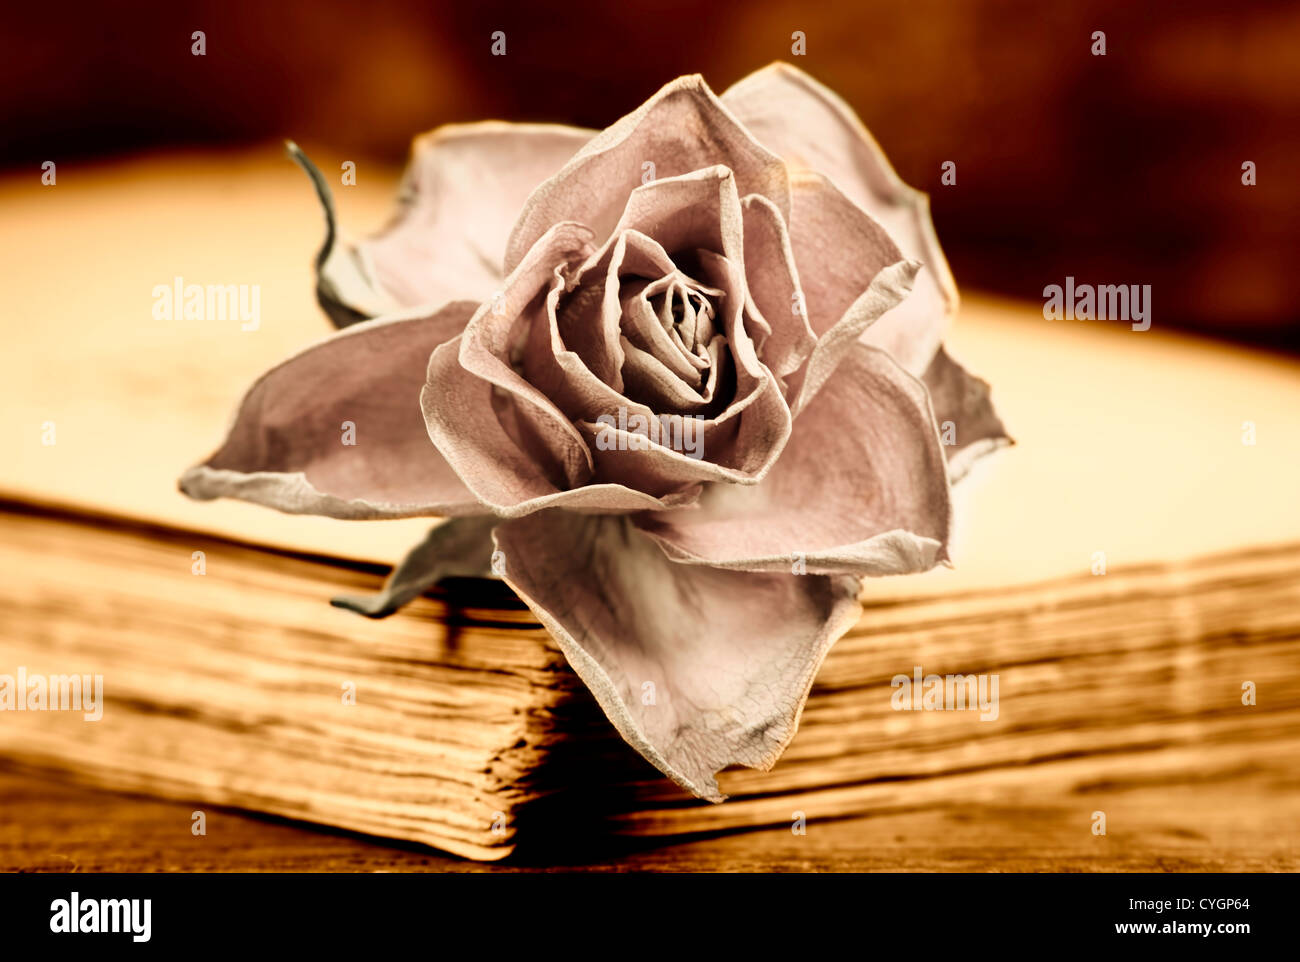 a faded rose on an old book - Stock Image